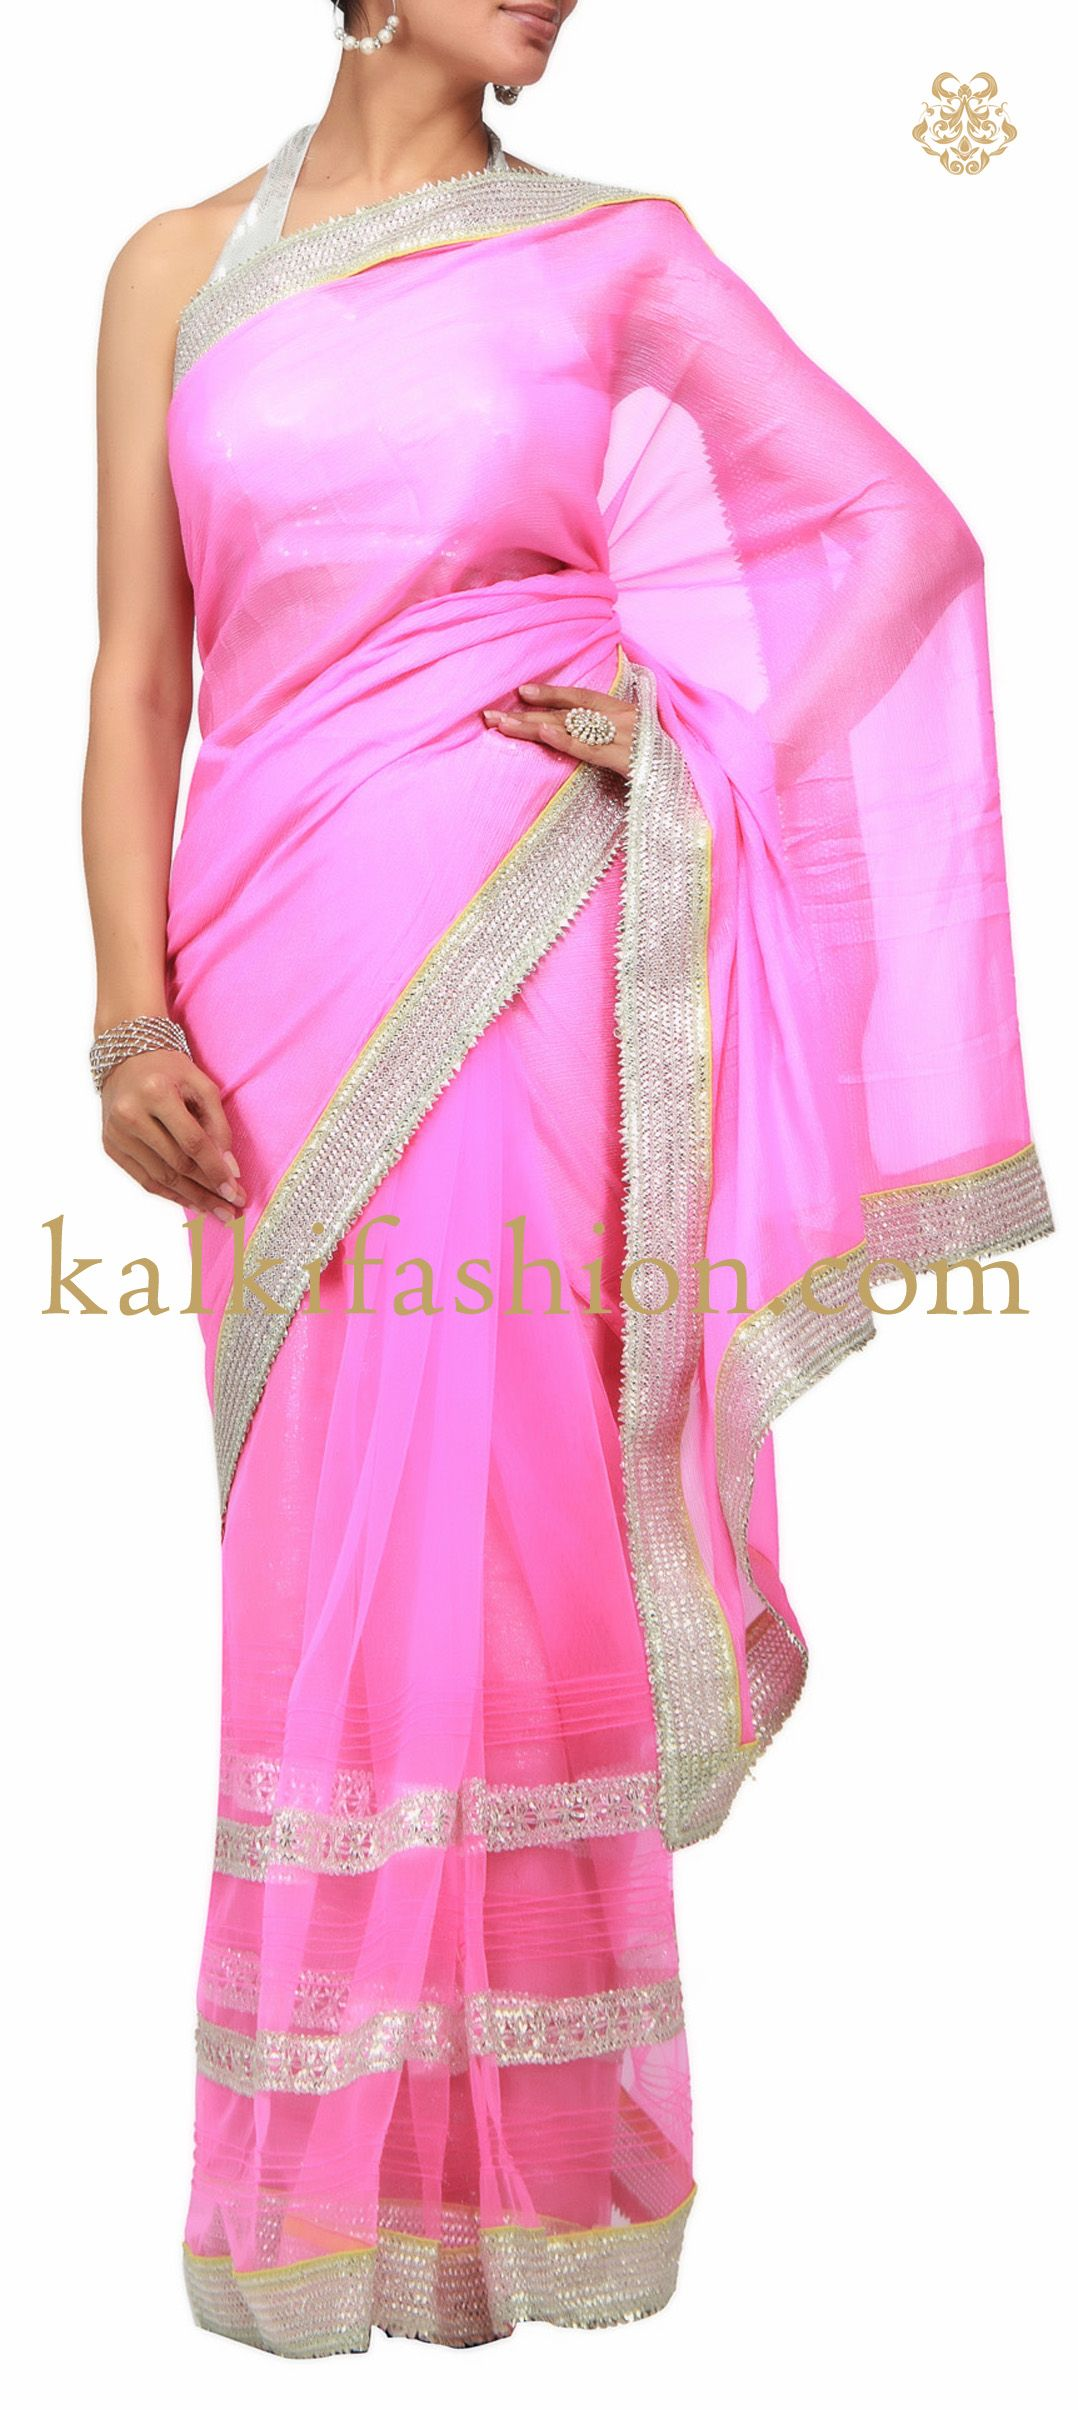 Pin By Kalkifashion Com On Sarees Pinterest Saree Chiffon Saree